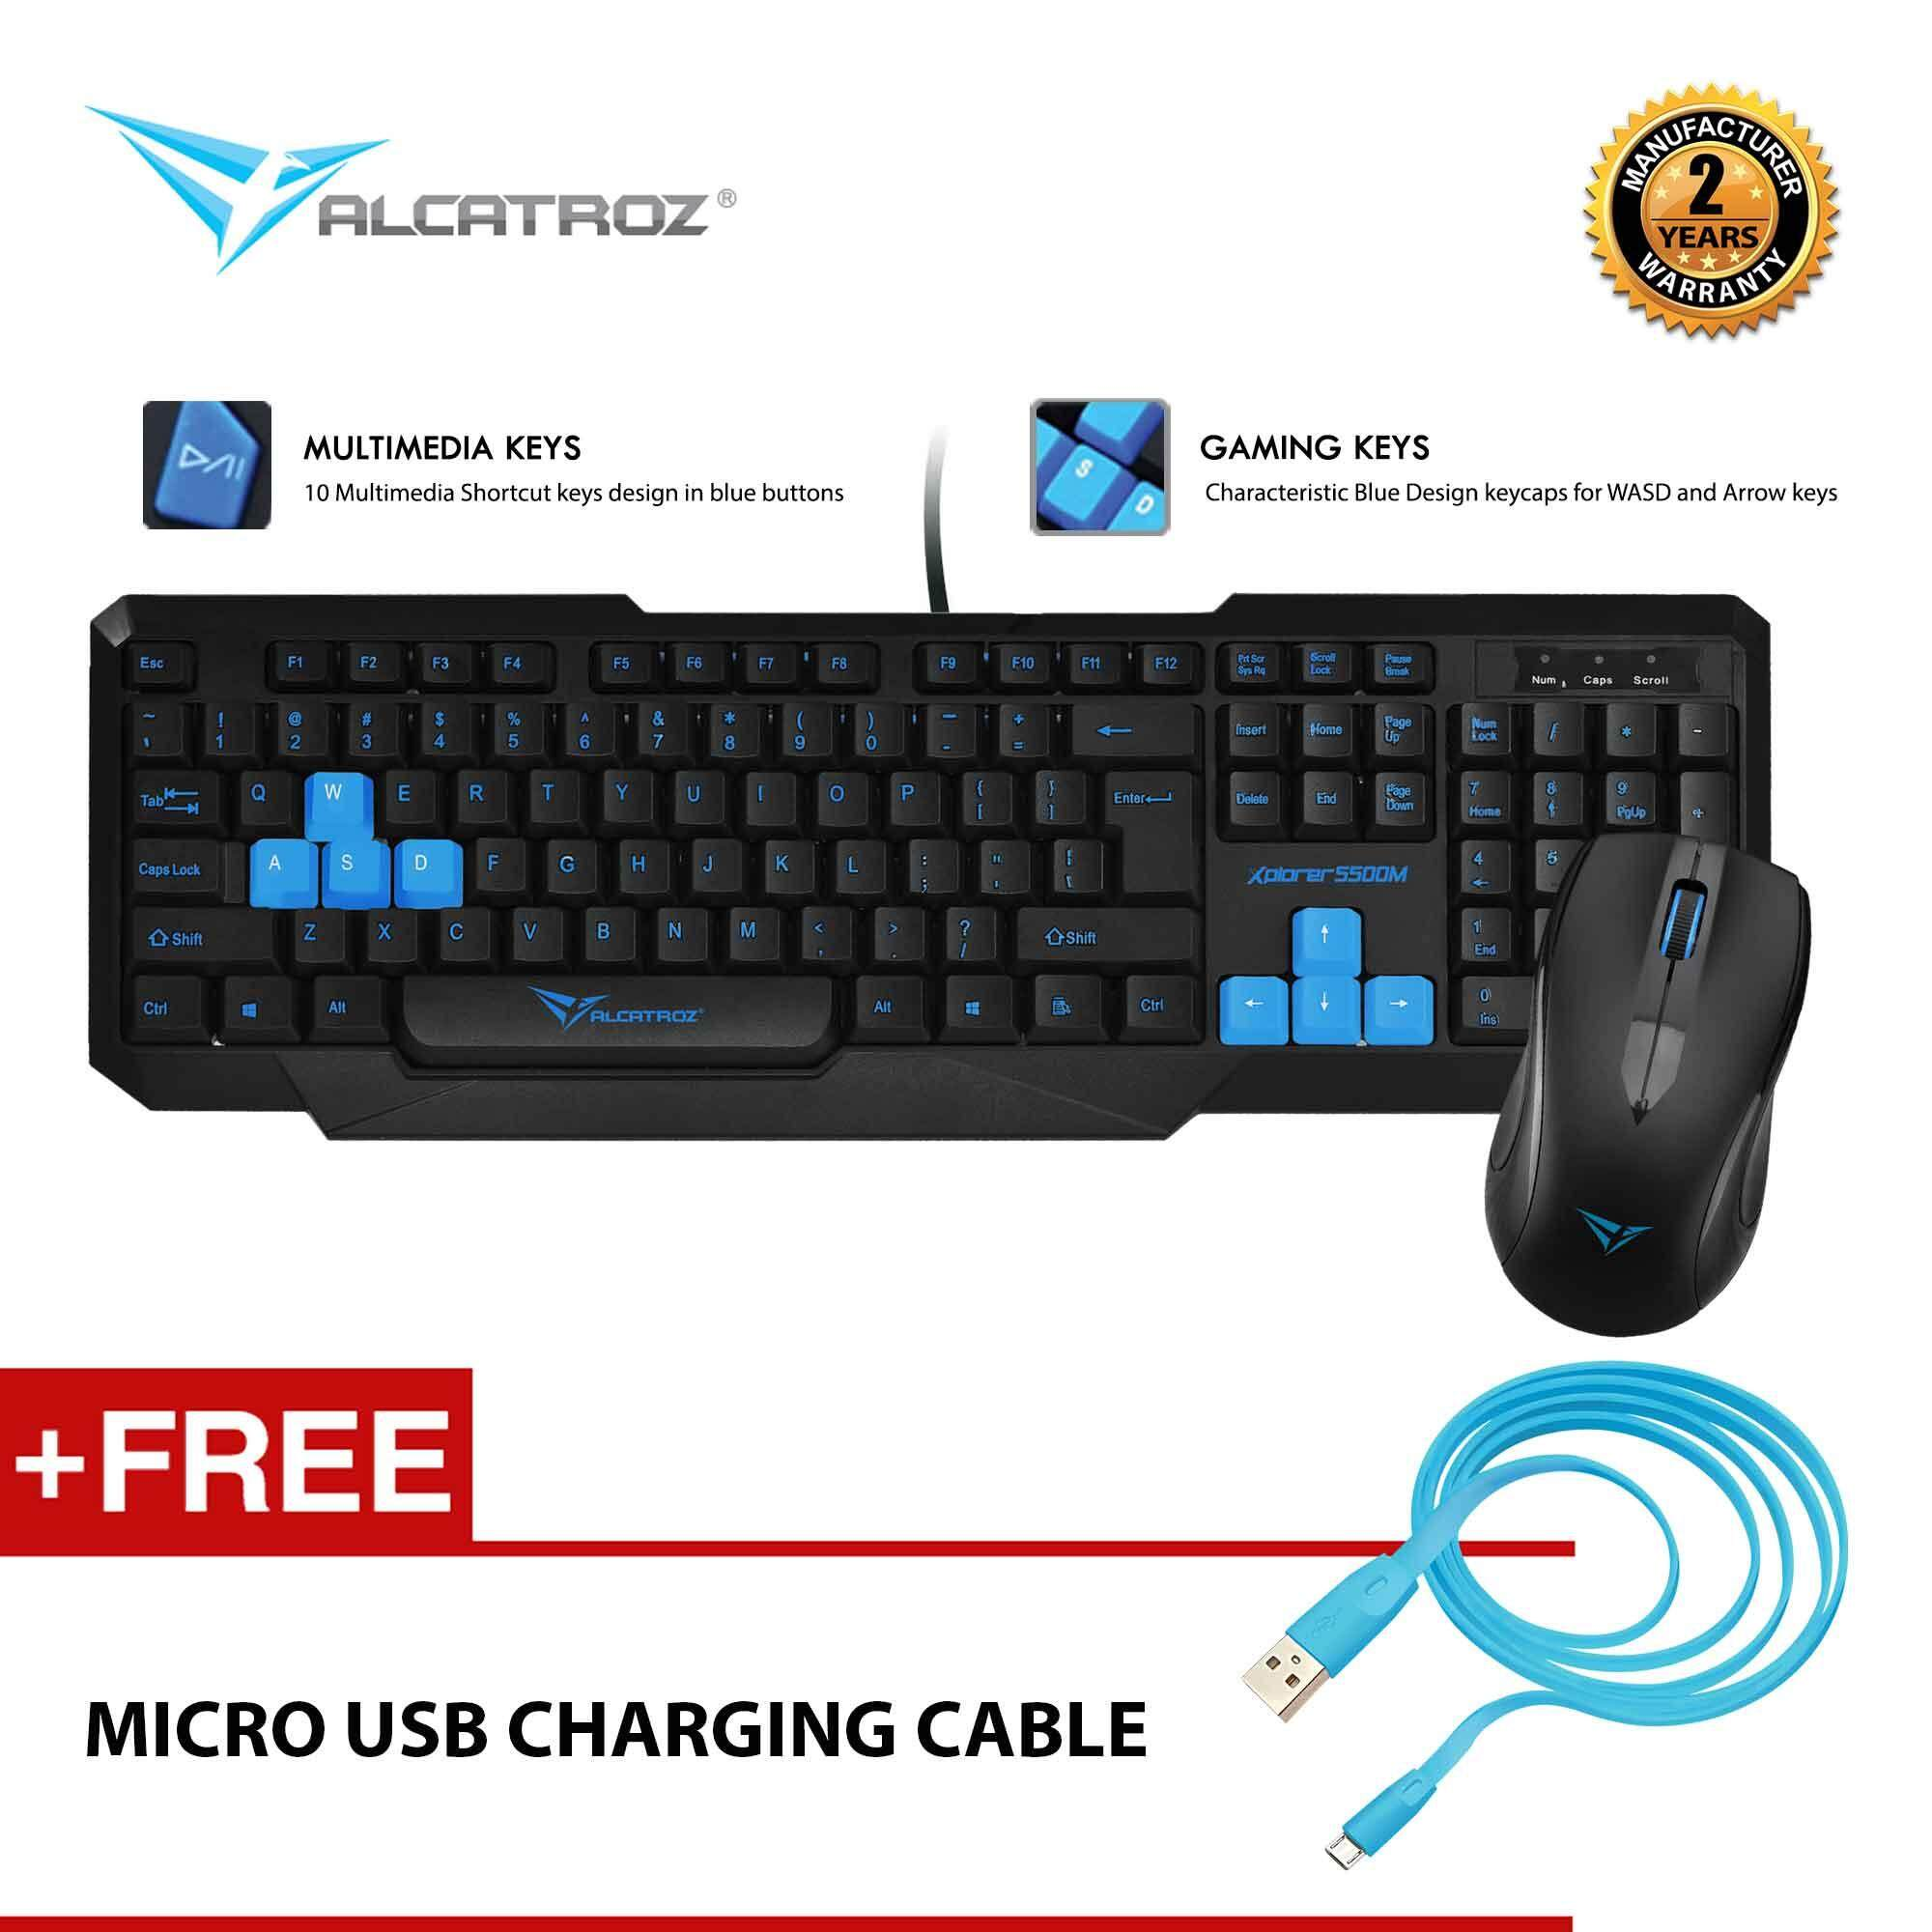 Xplorer 5500M USB Multimedia Keyboard Mouse Combo Free Micro USB Charging Cable By Alcatroz Malaysia